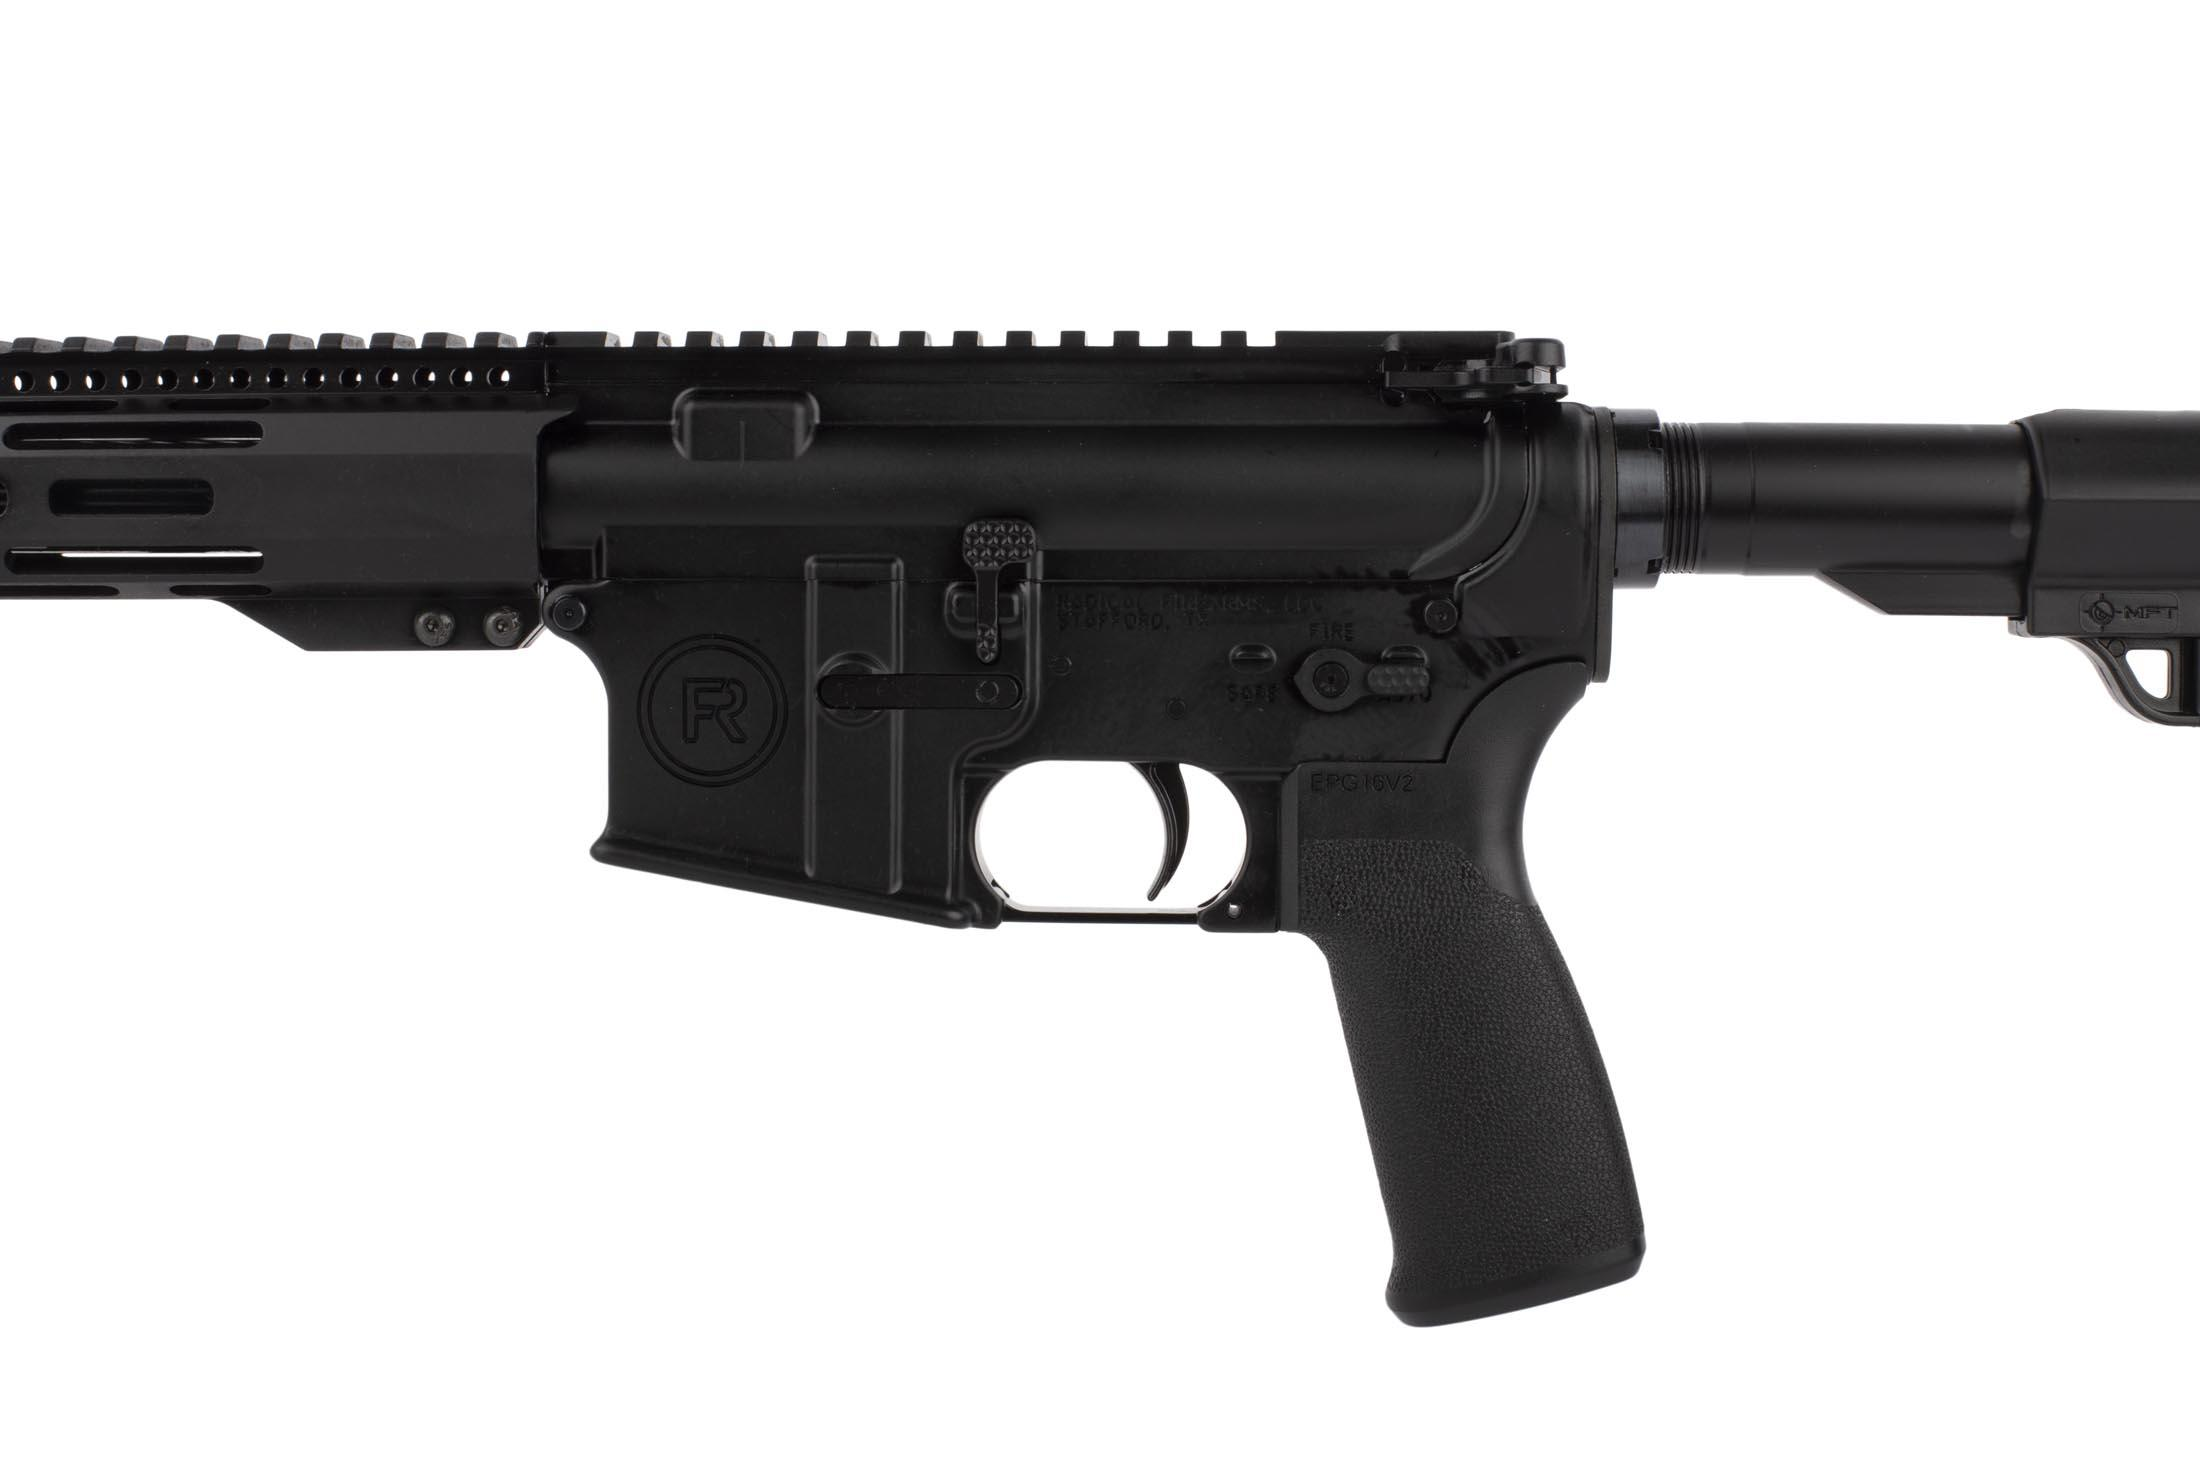 Radical Firearms 7.62x39mm 16in AR is equipped with ambidextrous safety selector, enhanced magazine release, and carbine stock